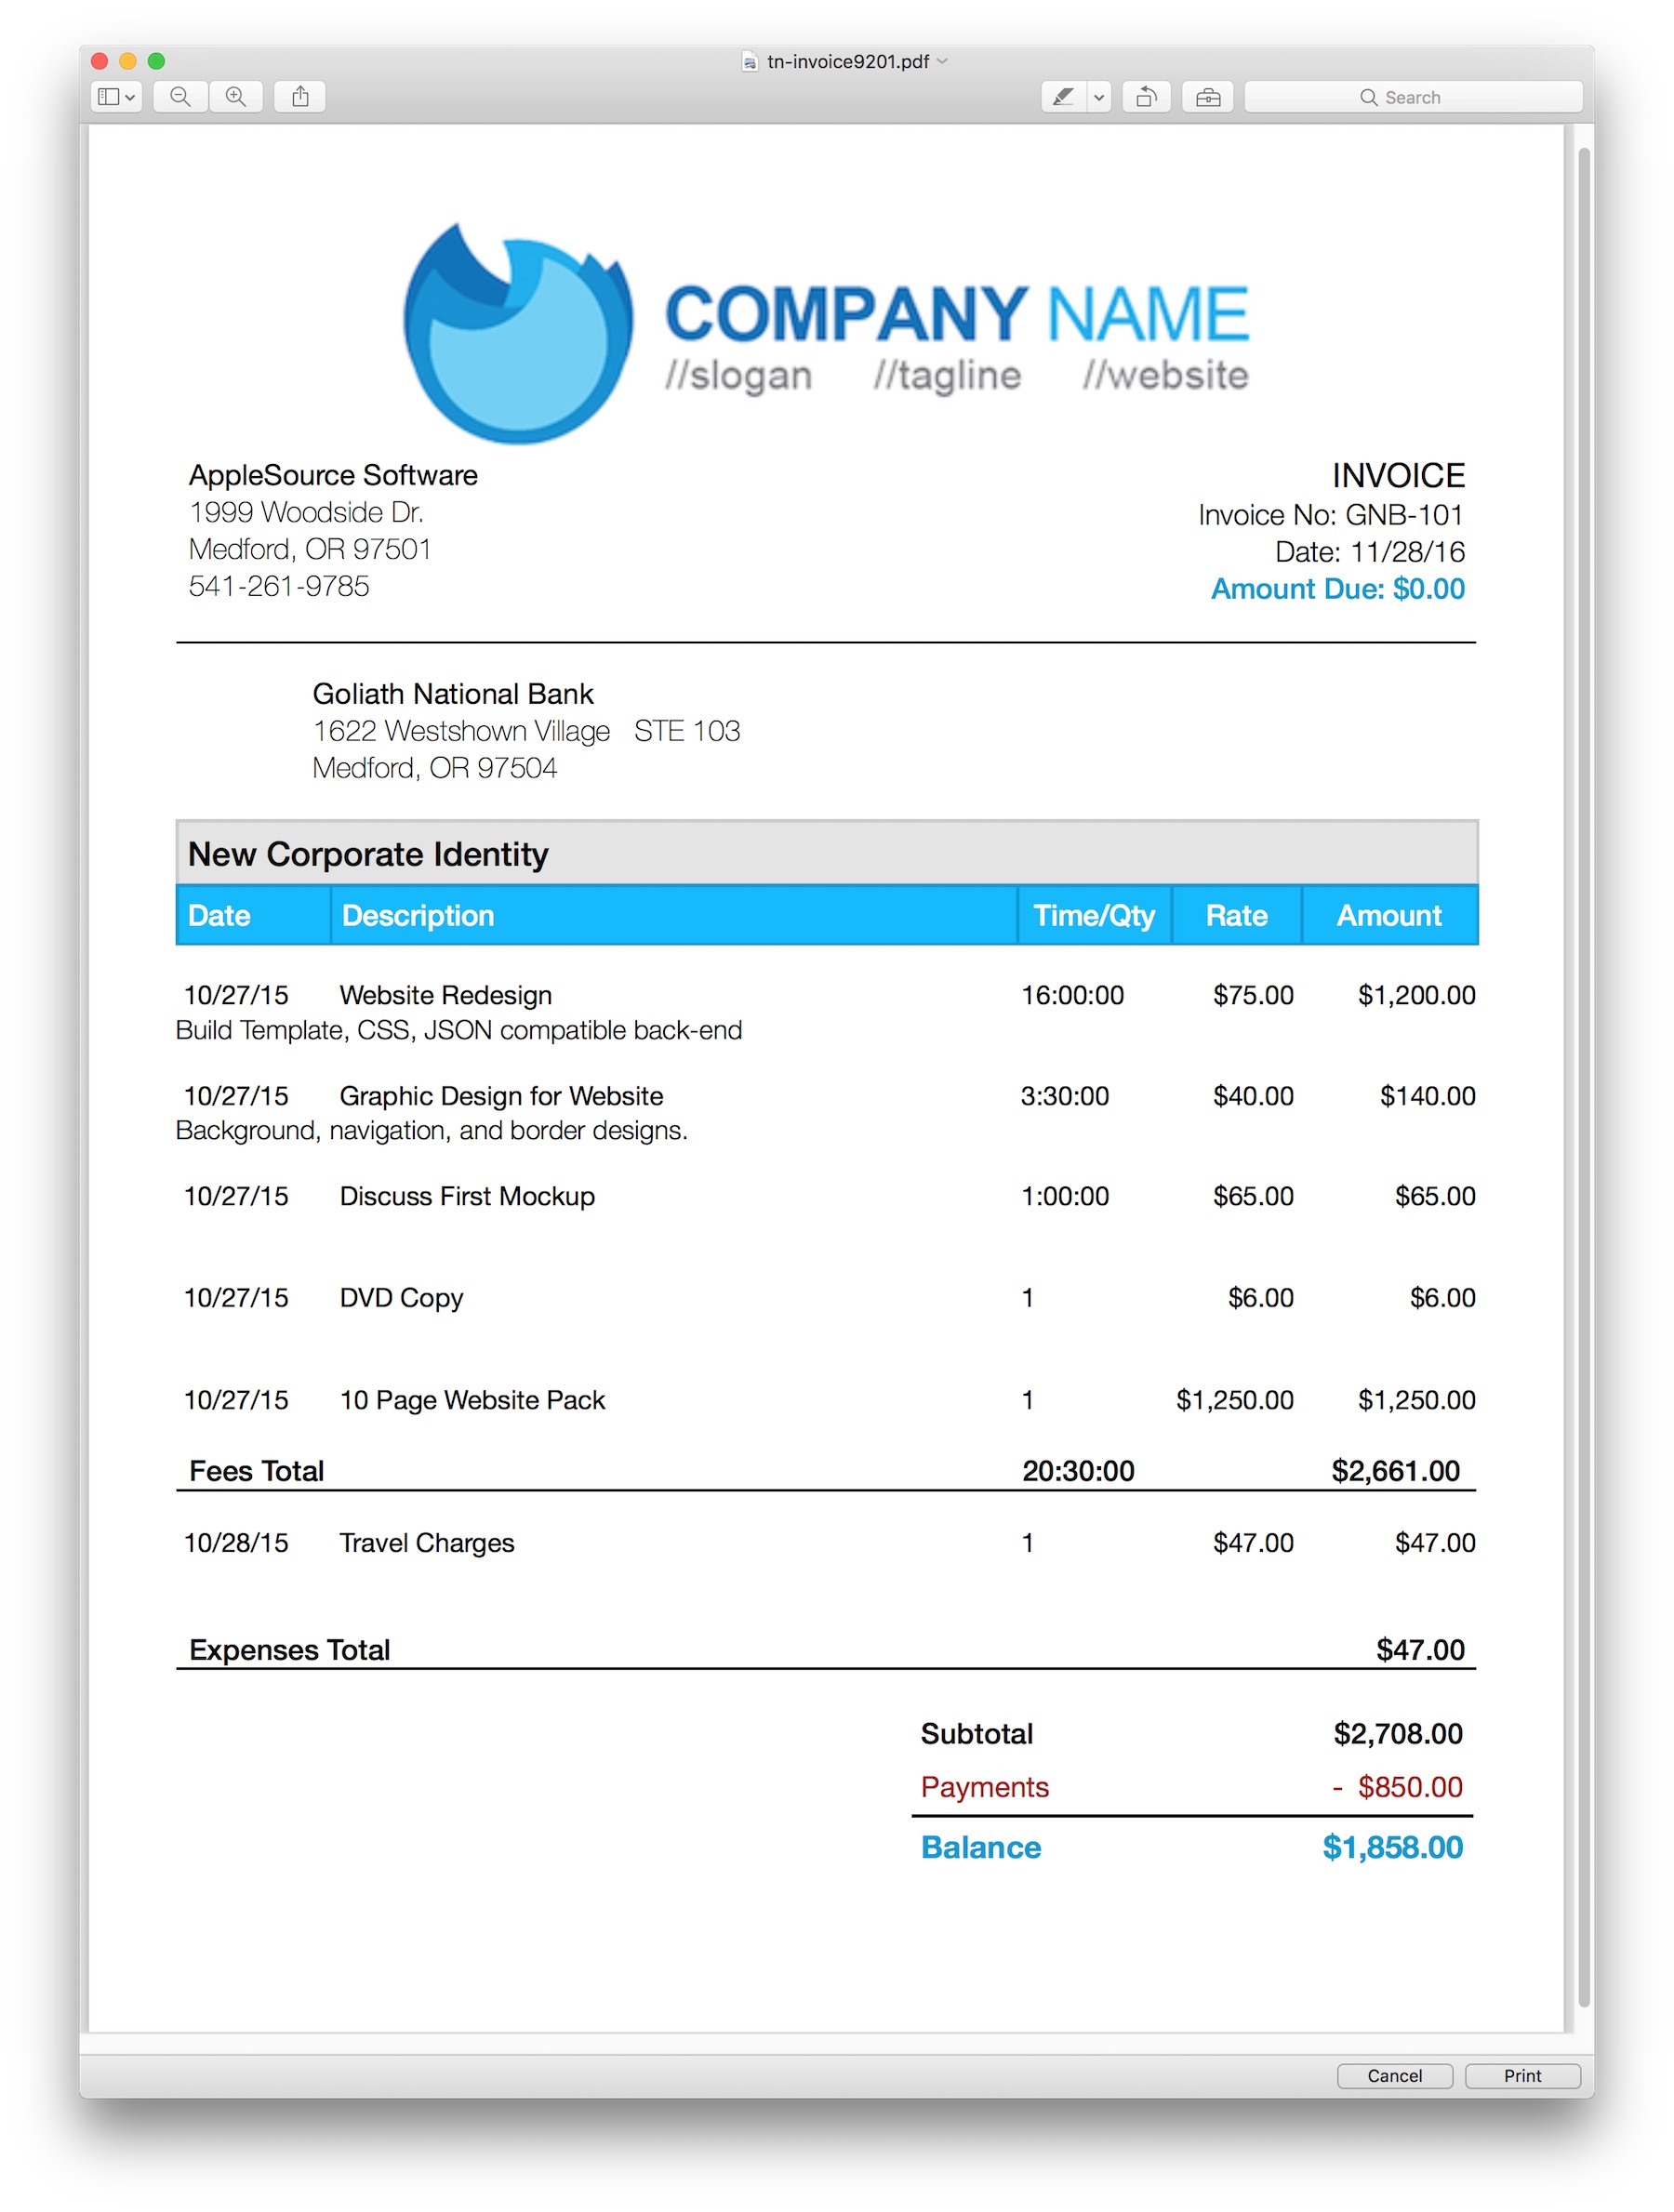 applesource software > timenet invoice templates - time tracking, Invoice templates